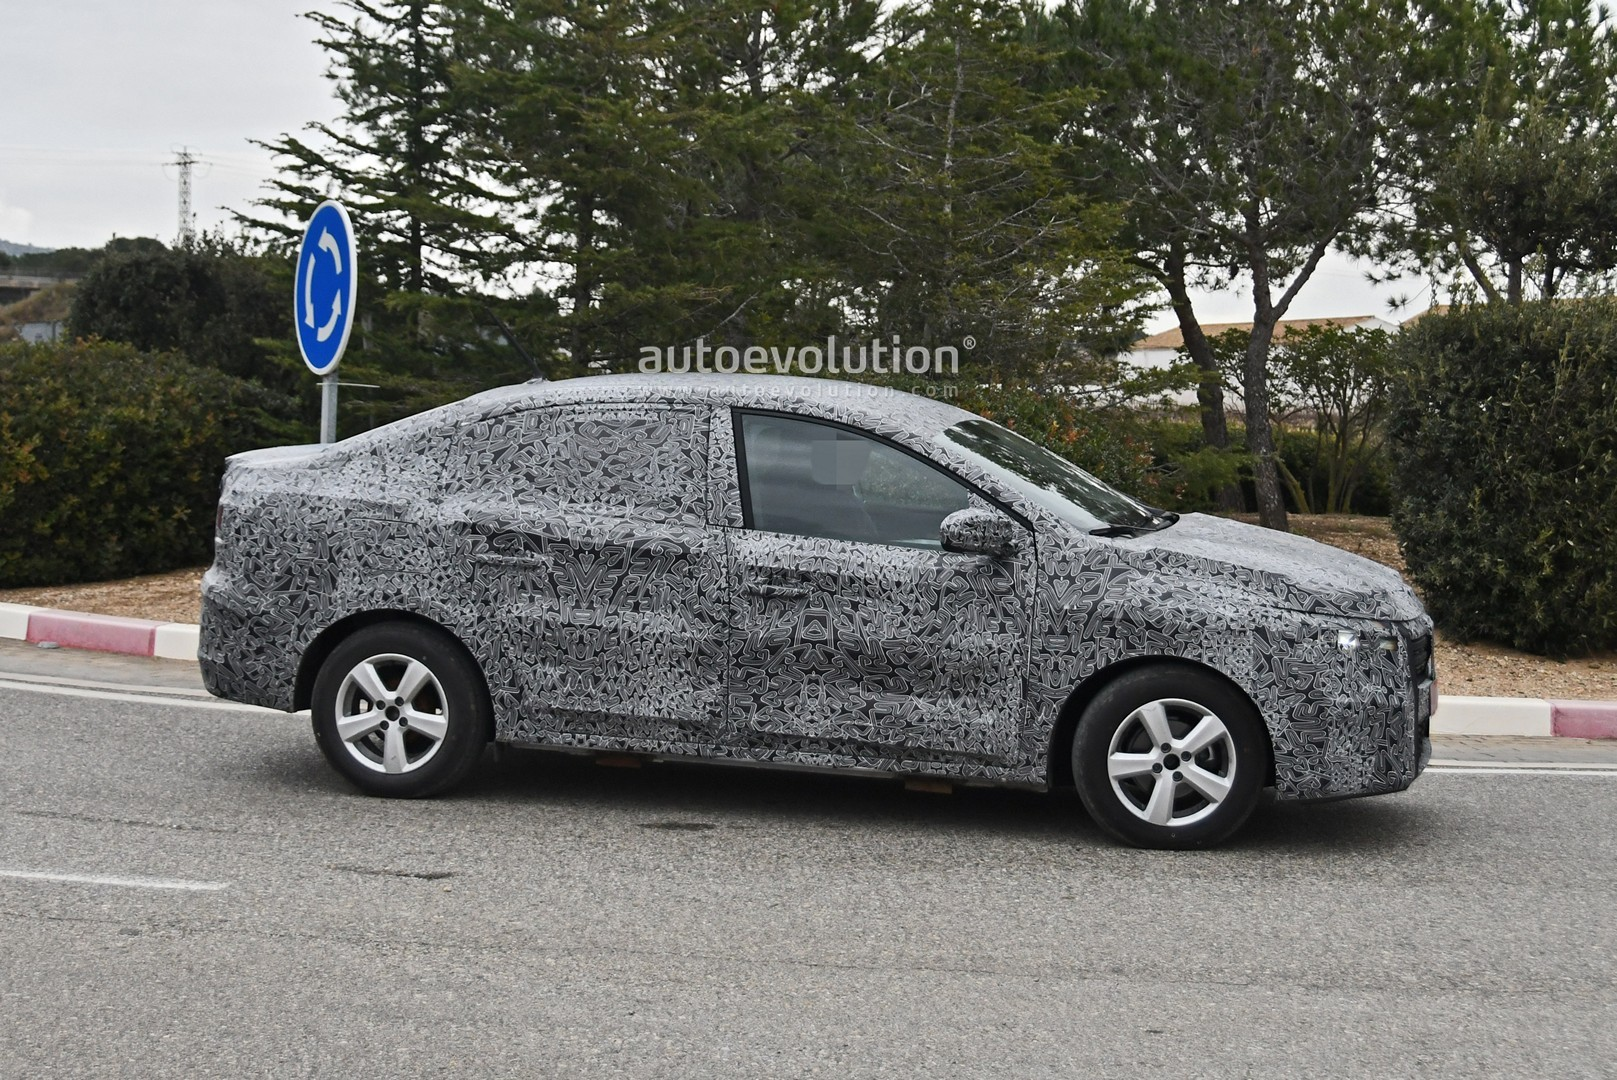 all-new-2021-dacia-logan-spied-with-led-lights-coupe-roof_6